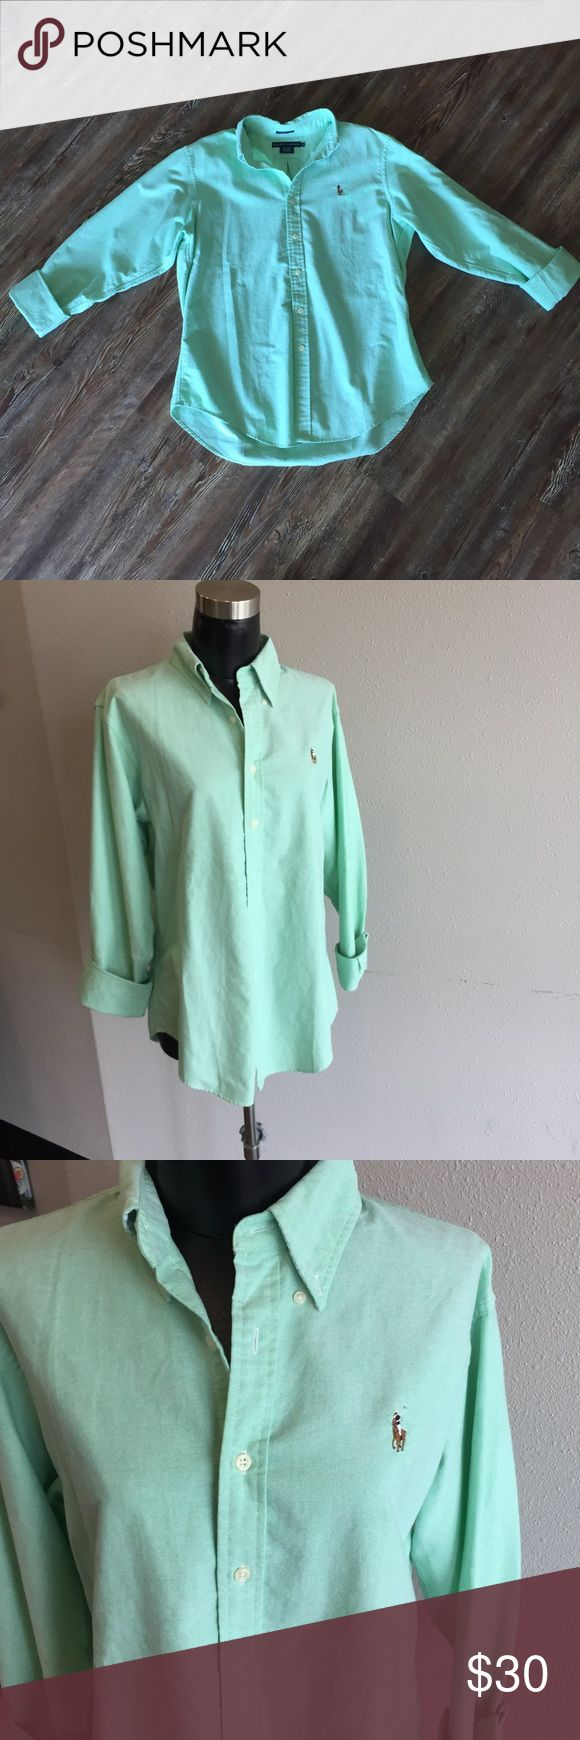 Women's Ralph Lauren Oxford Classic Fit. Size 14 •button down collar, long sleeves, barrel cuffs. •100% cotton •signature multicolored embroidered pony accents the left chest. This shirt is in GREAT condition. Like new. (705) ••shirt is a mint green color Ralph Lauren Tops Button Down Shirts